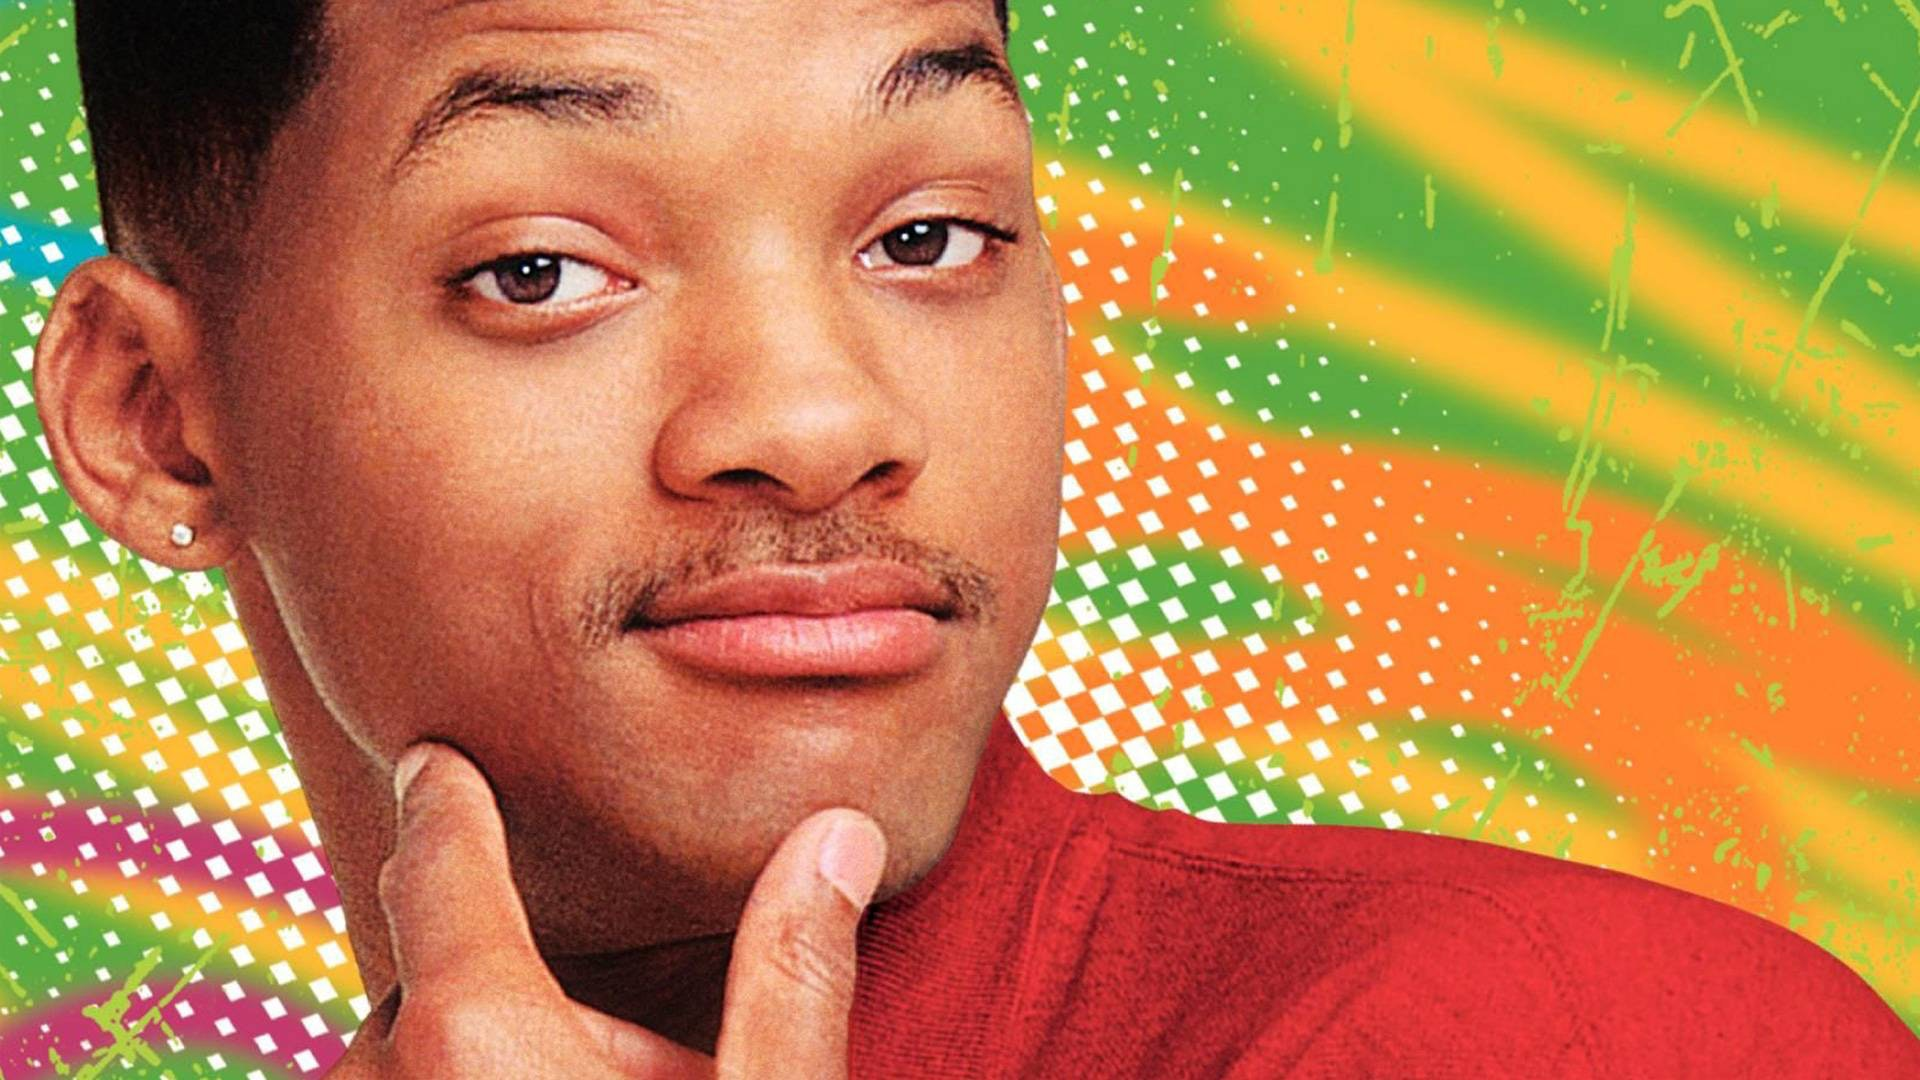 Will Smith - The Fresh Prince of Bel-Air